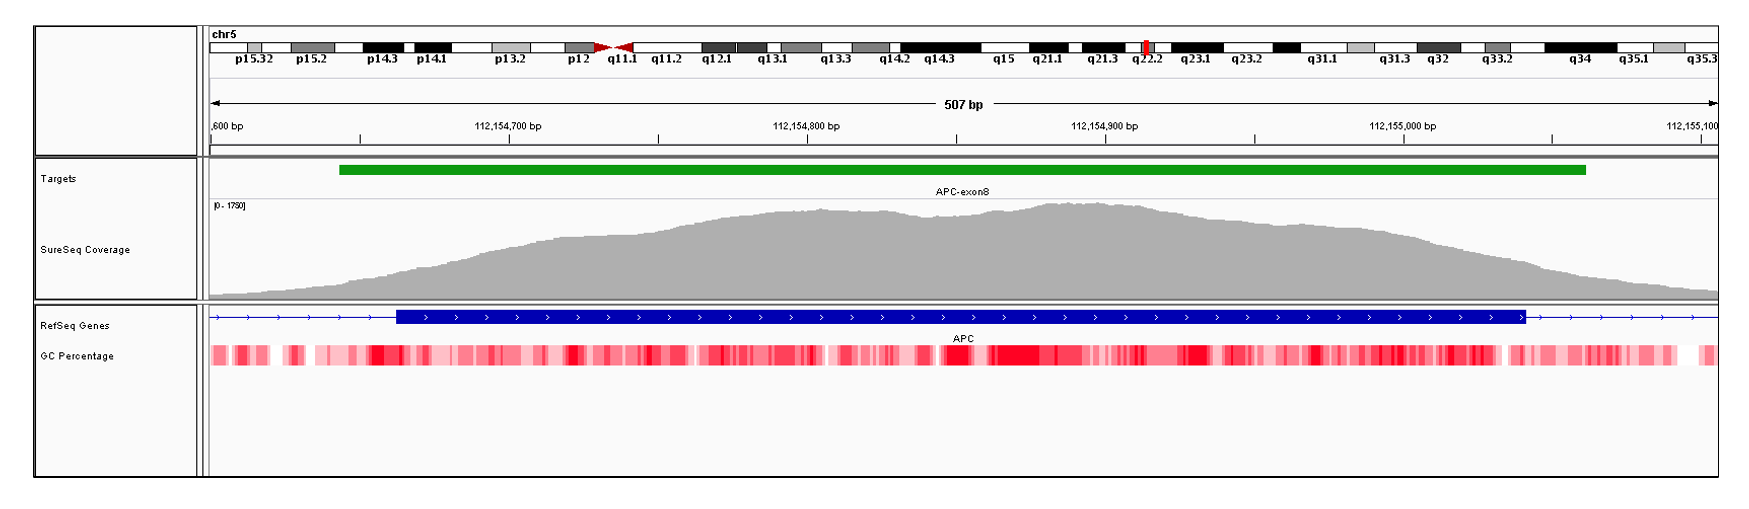 APC Exon 8 (hg19 chr5:112154663-112155041). Depth of coverage per base (grey). Targeted region (green). Gene coding region as defined by RefSeq (blue). GC percentage (red). Image